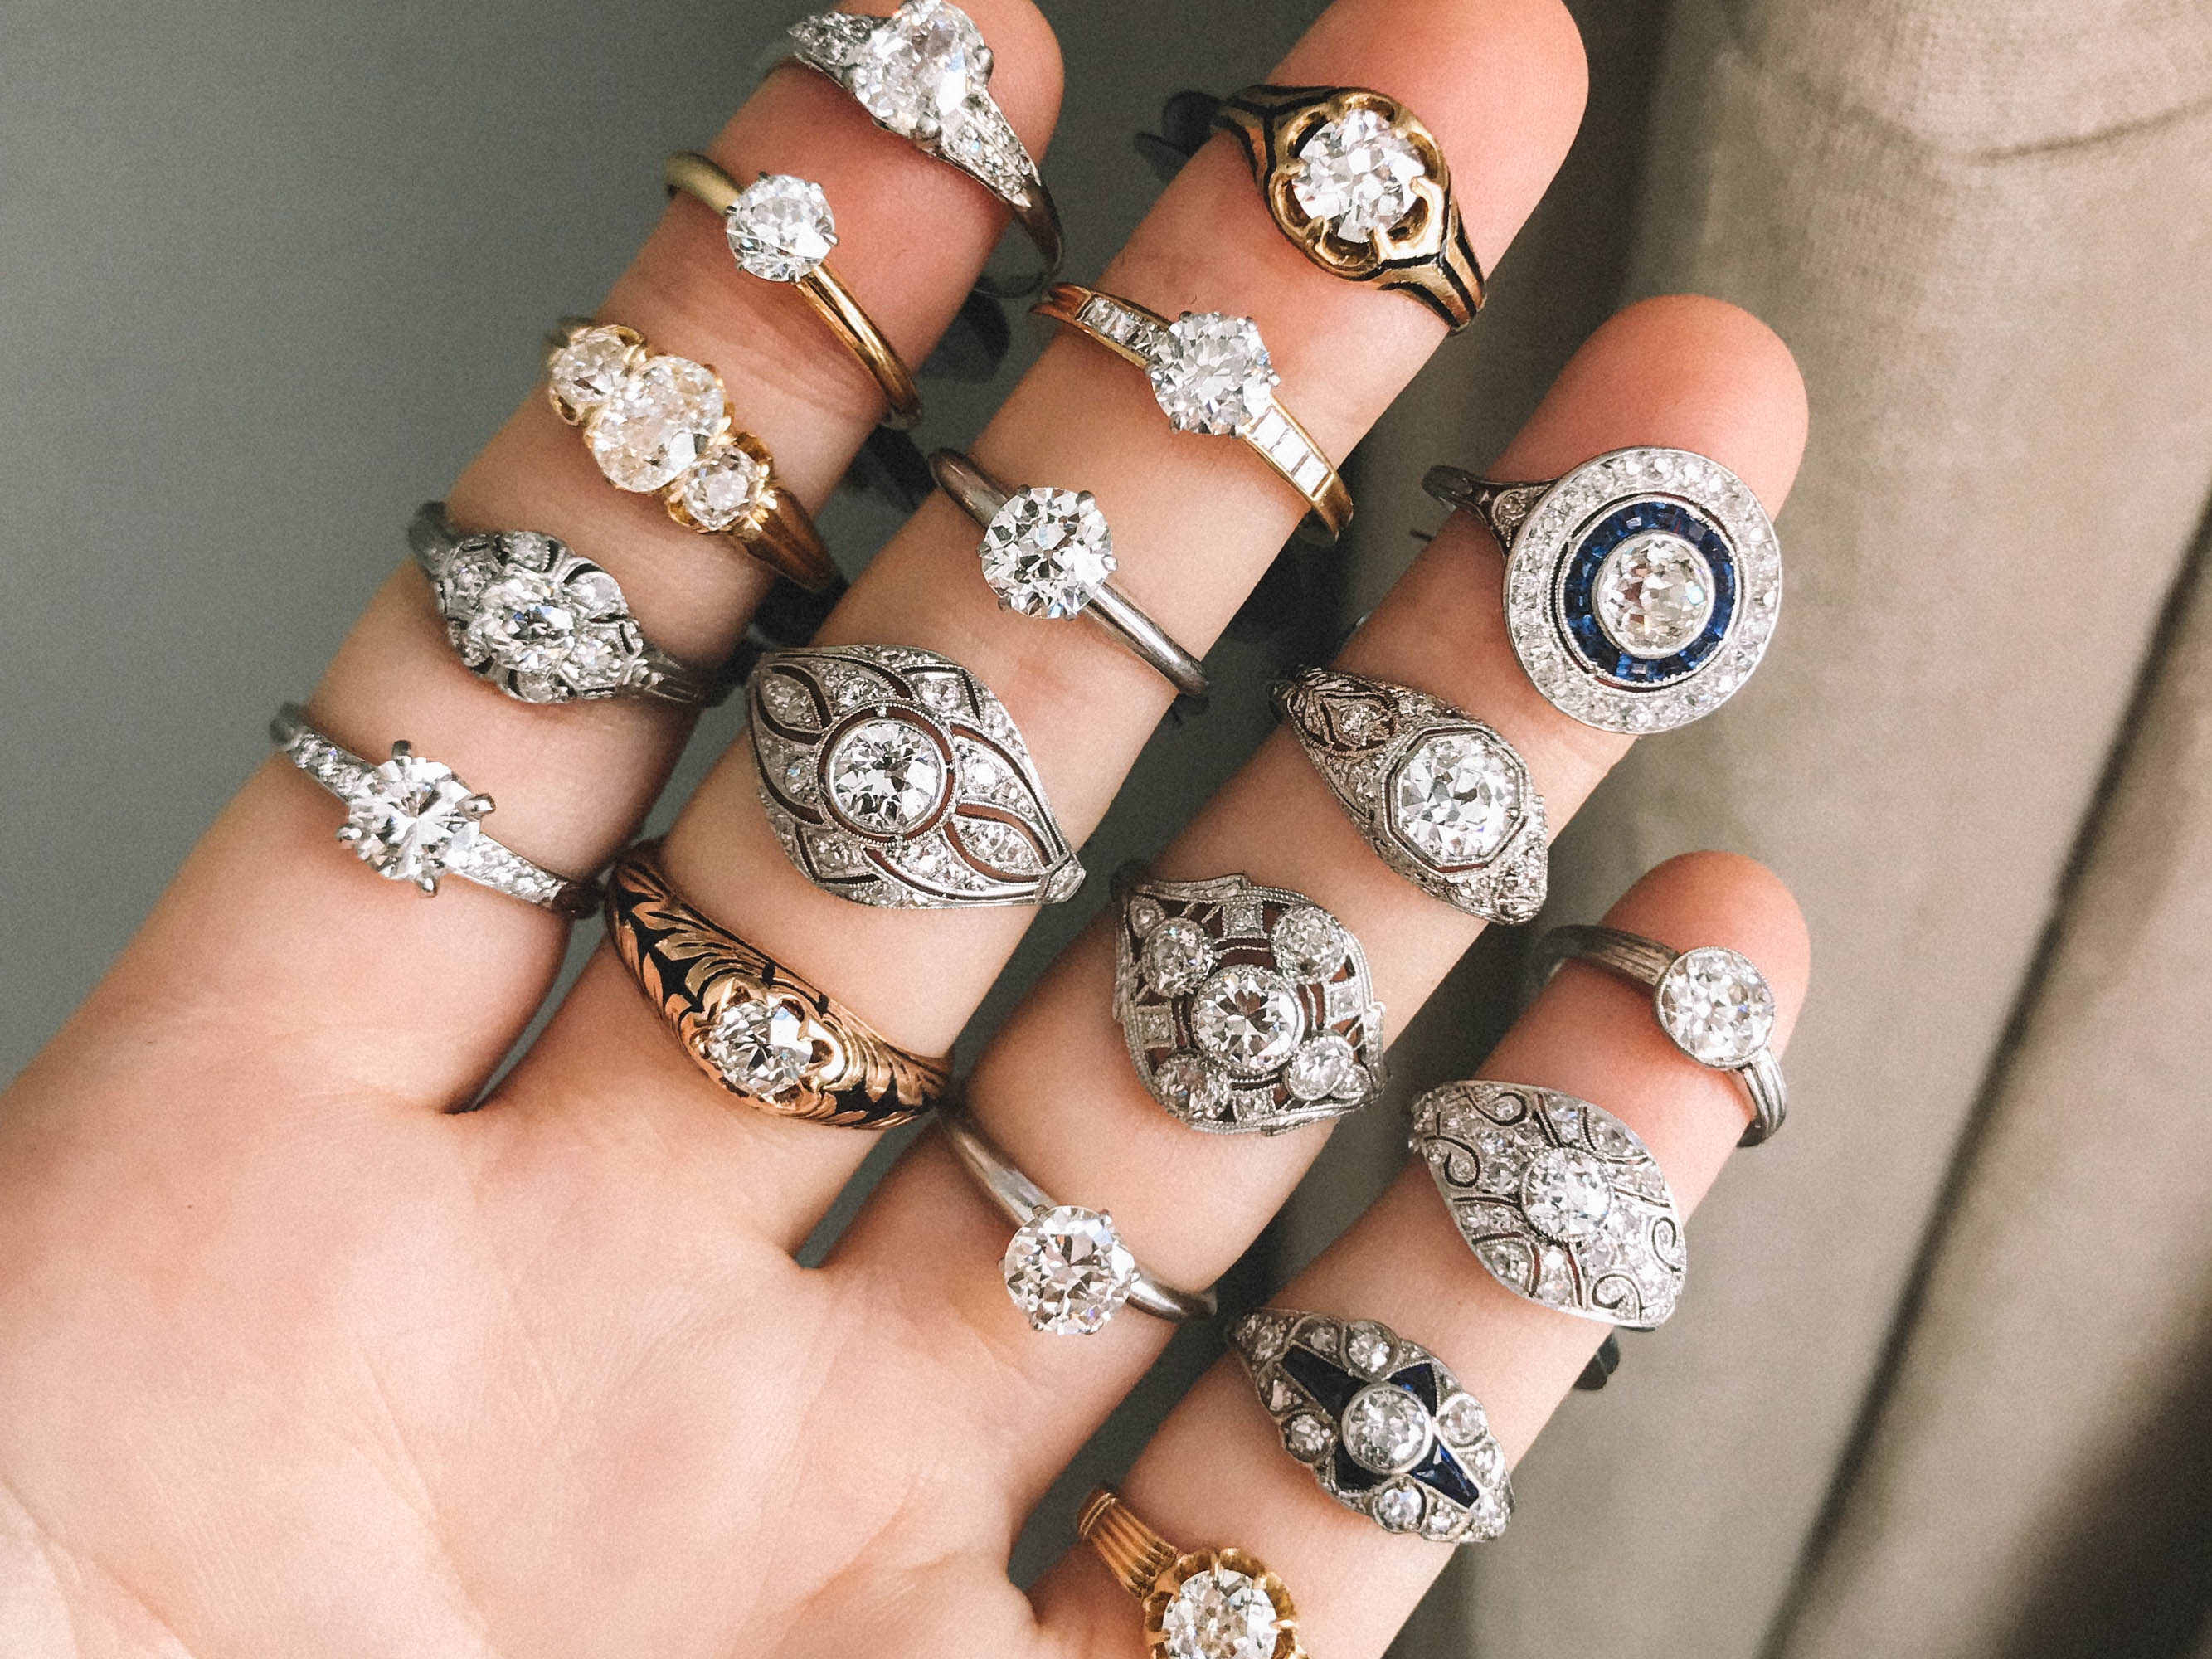 stunning rings wedding vintage under blogs carat jewelry erstwhile stories engagement